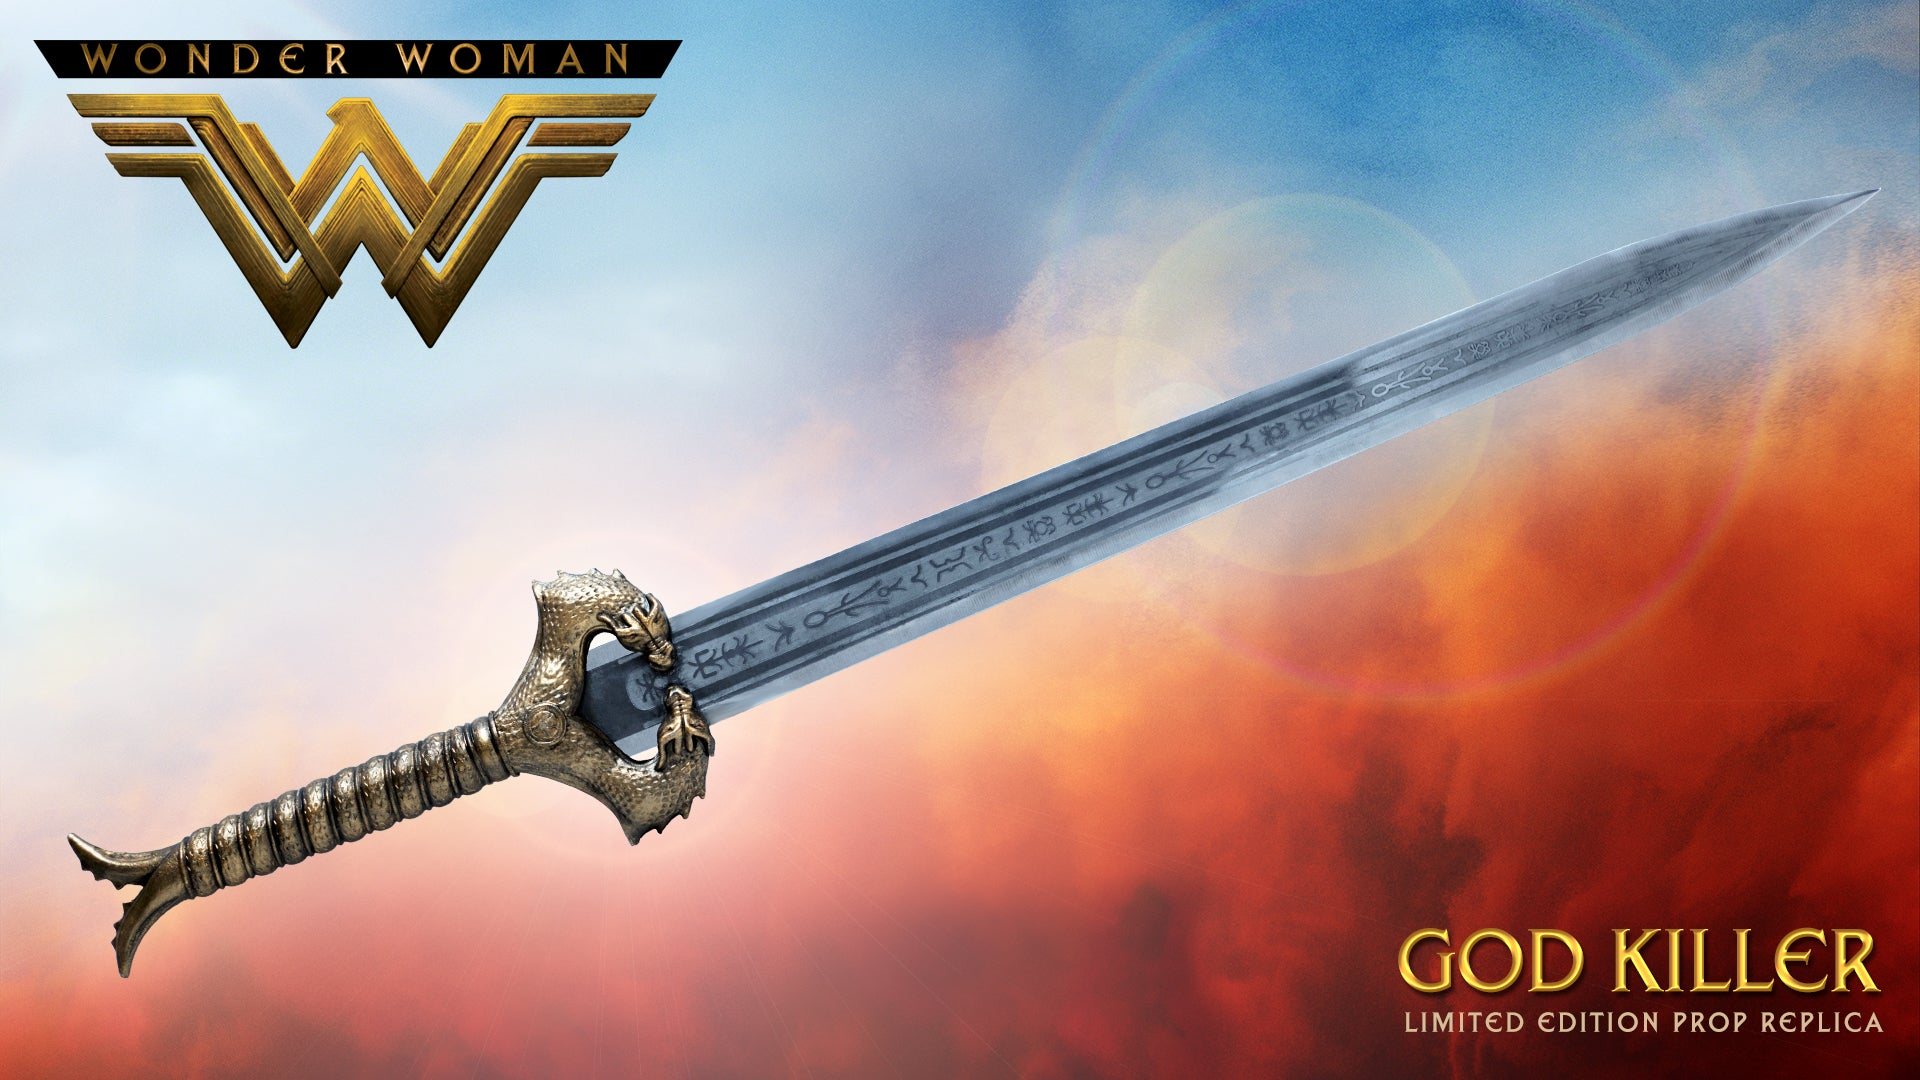 Wonder Woman: Movie - Wonder Woman God Killer Prop Replica Sword